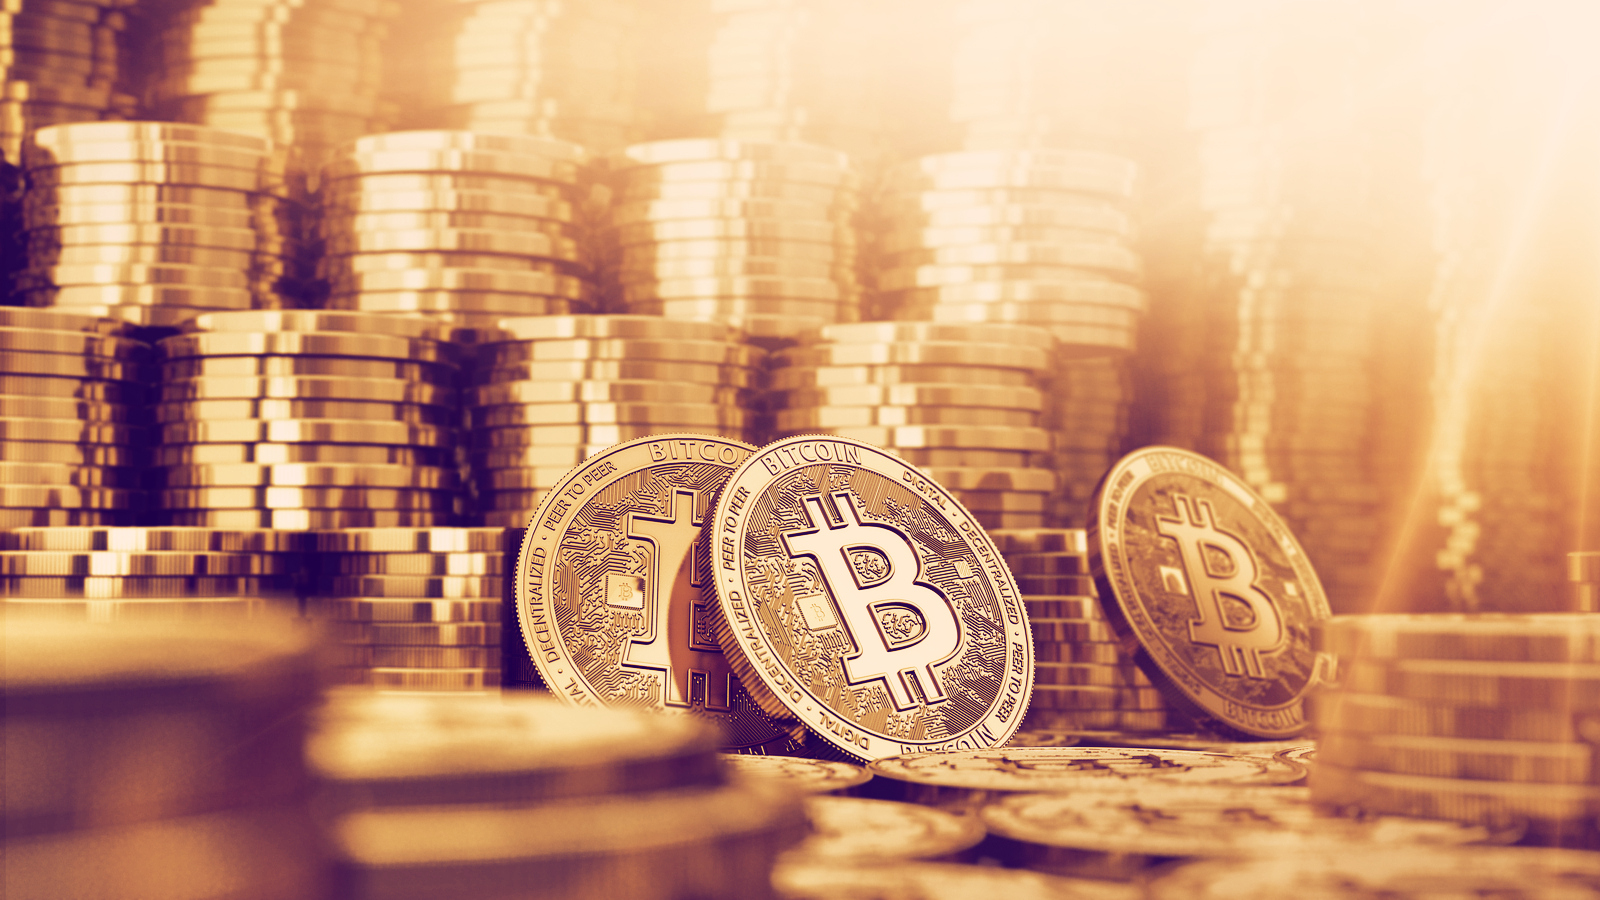 Sequoia Holdings Is Letting its Employees Get Paid in Bitcoin - Decrypt